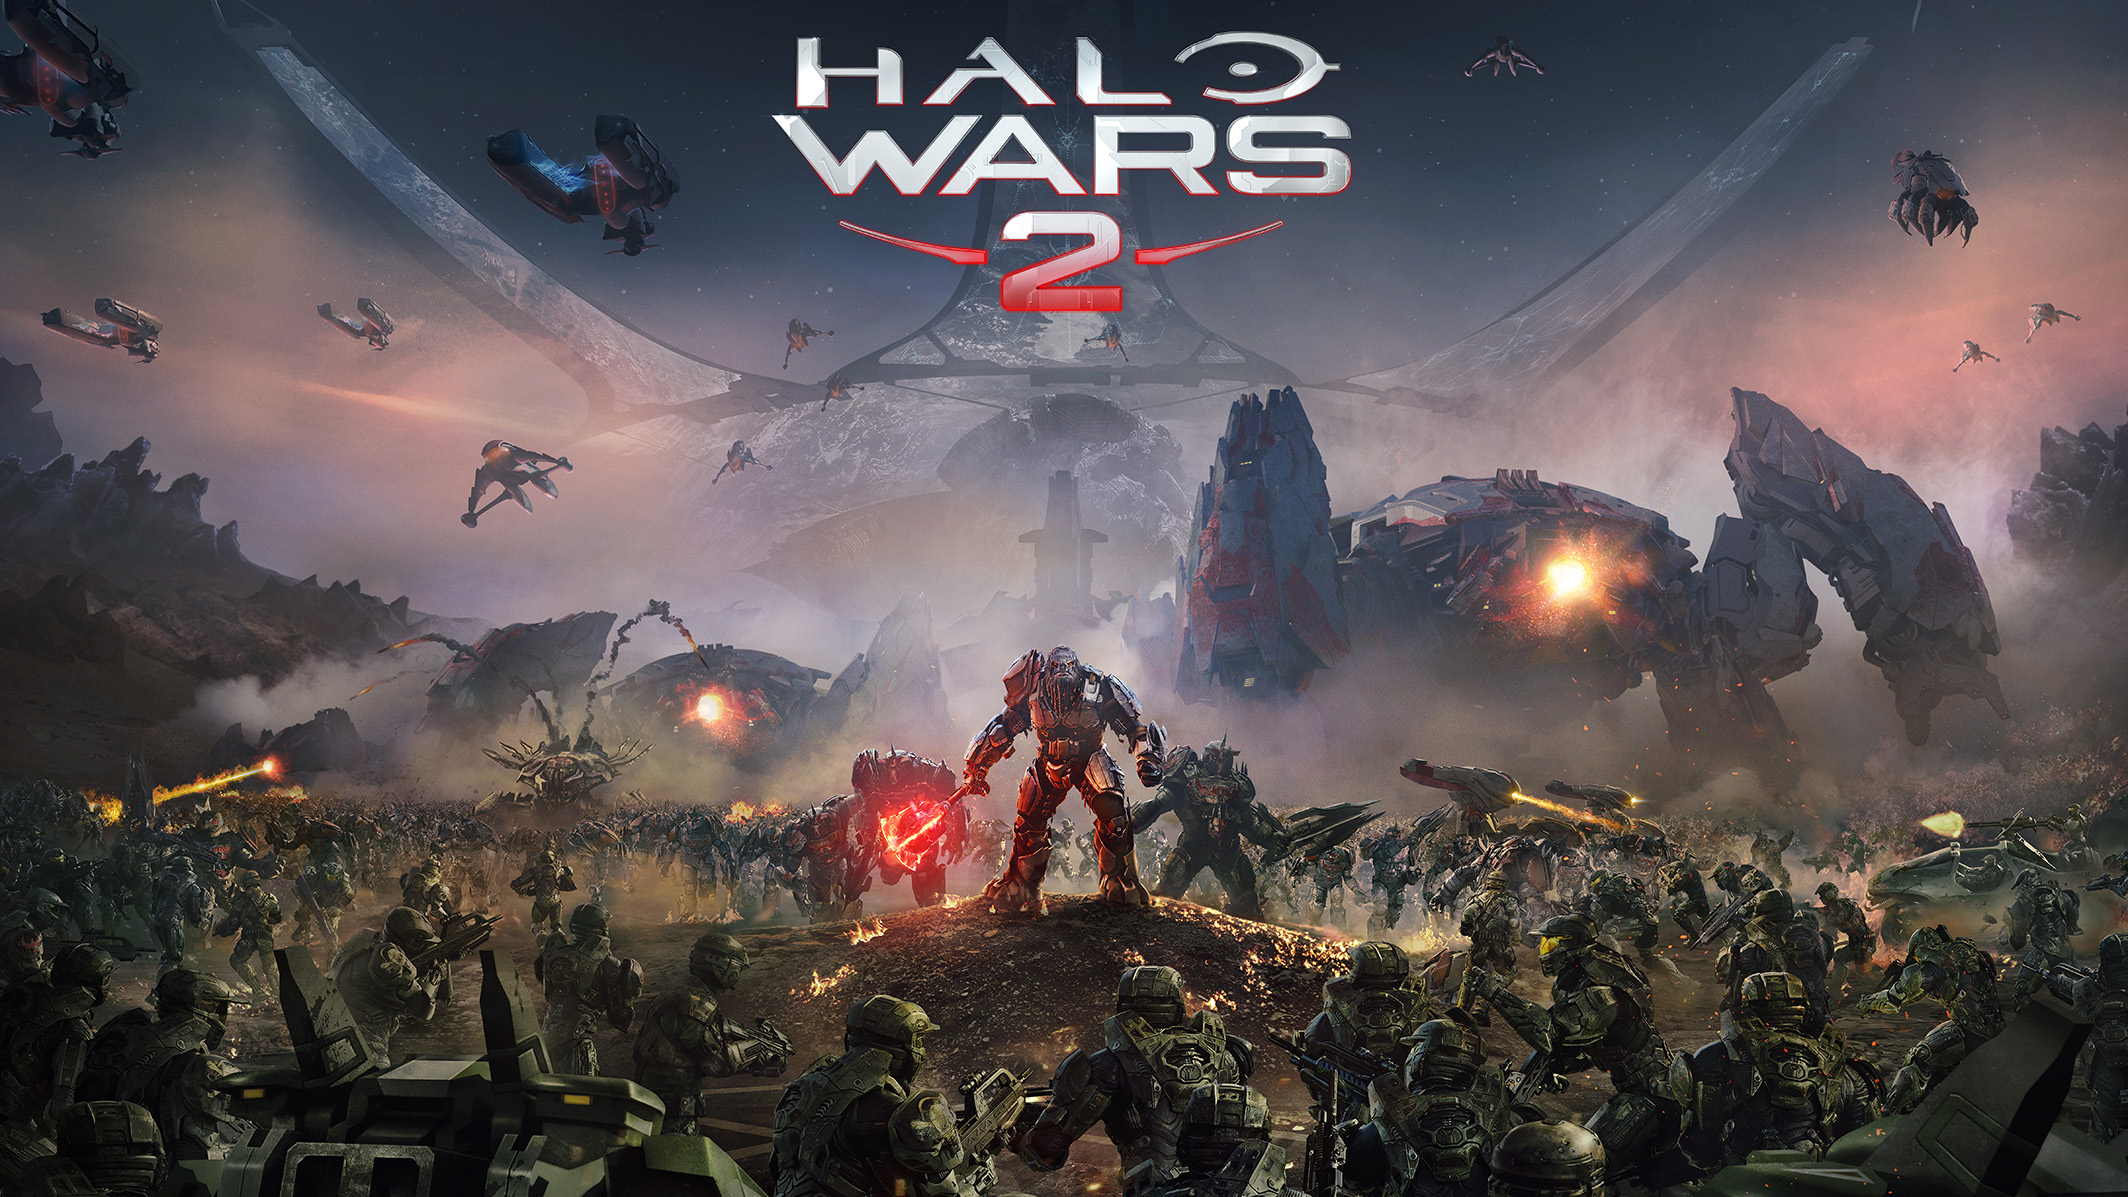 Halo Wars 2 Open Beta Now Live; Tutorial Video Released